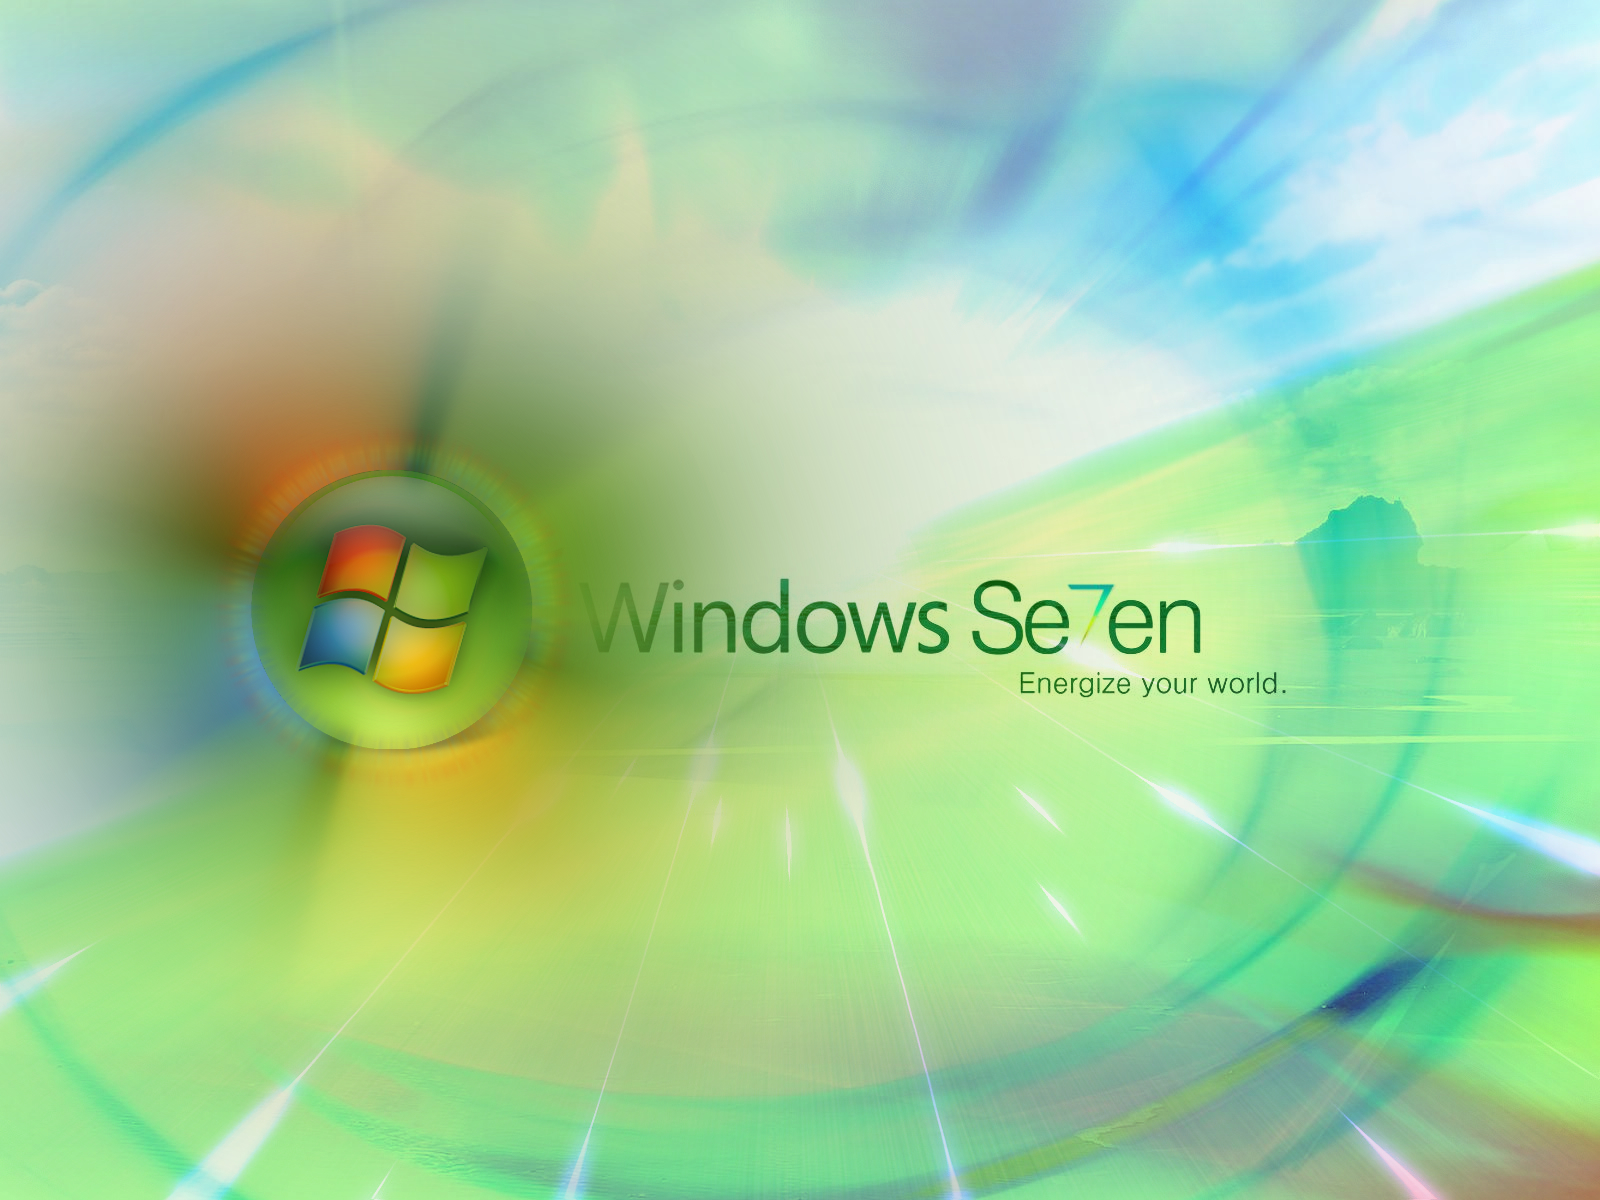 Cara Membuat Animasi Wallpapers/Background Bergerak Pada Windows 7